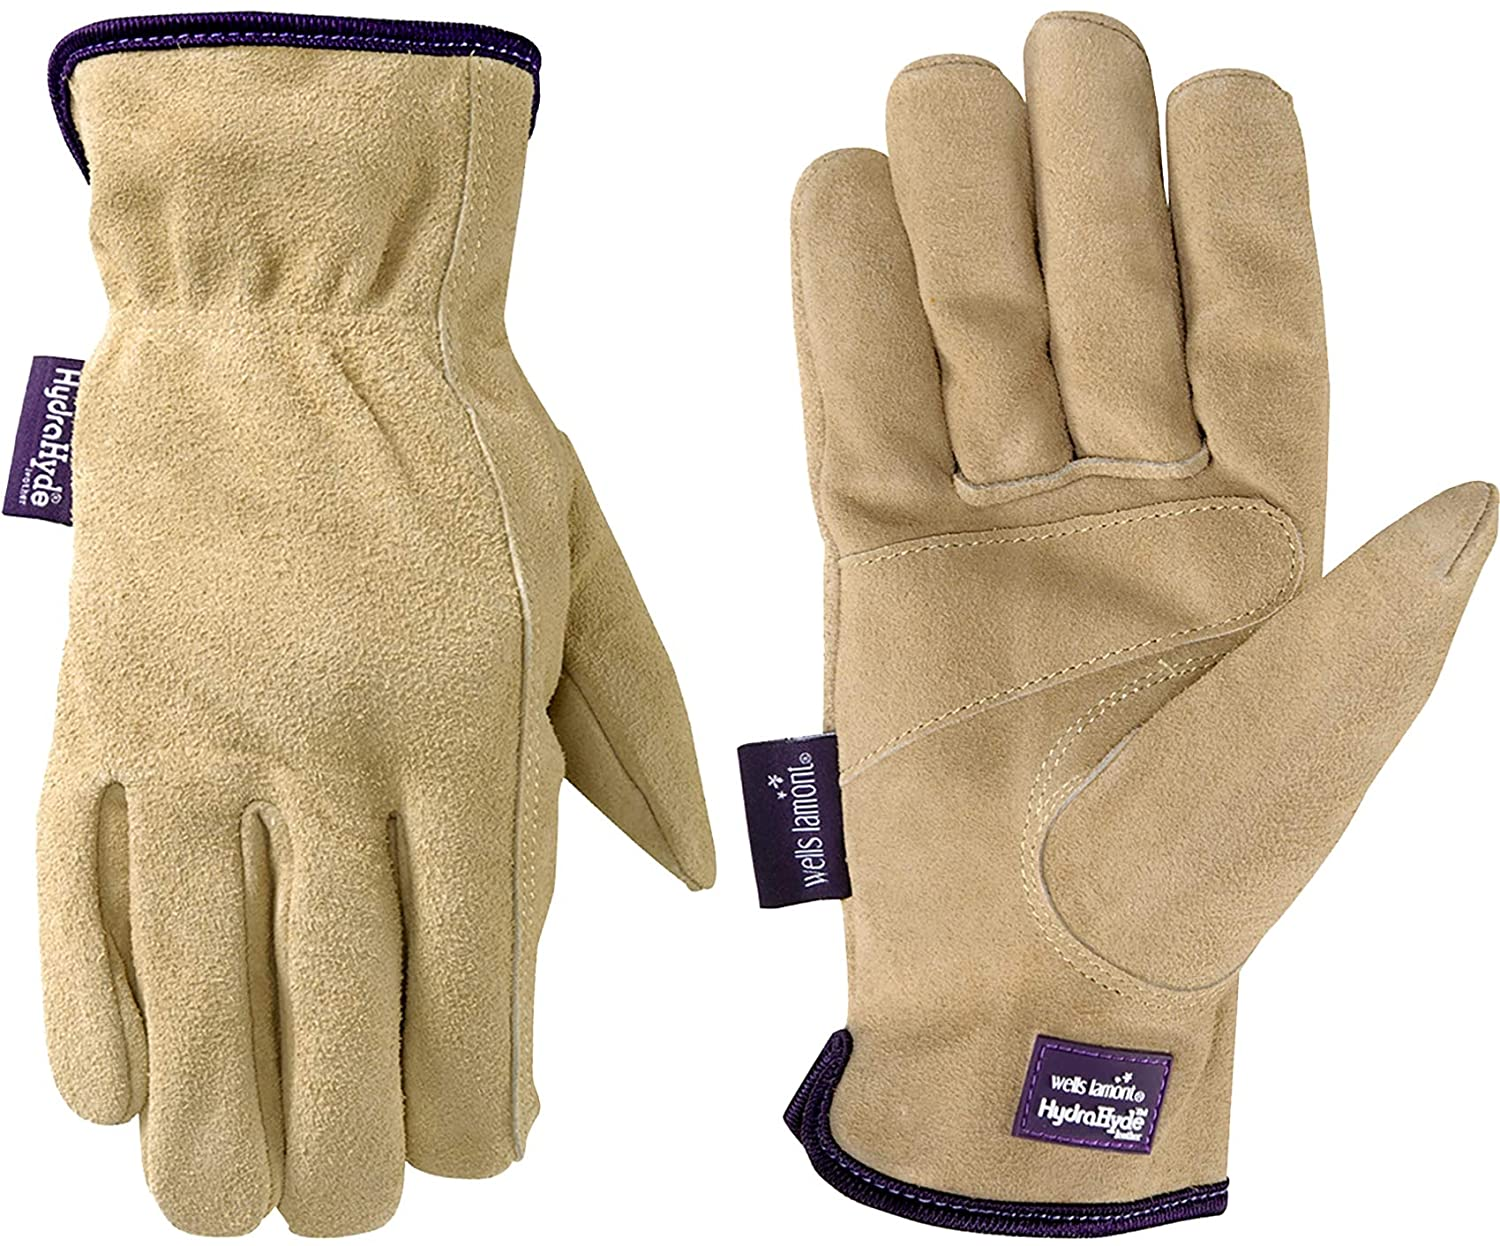 Women's Water-Resistant Leather Work Gardening Gloves (Wells Lamont 1003M), Medium